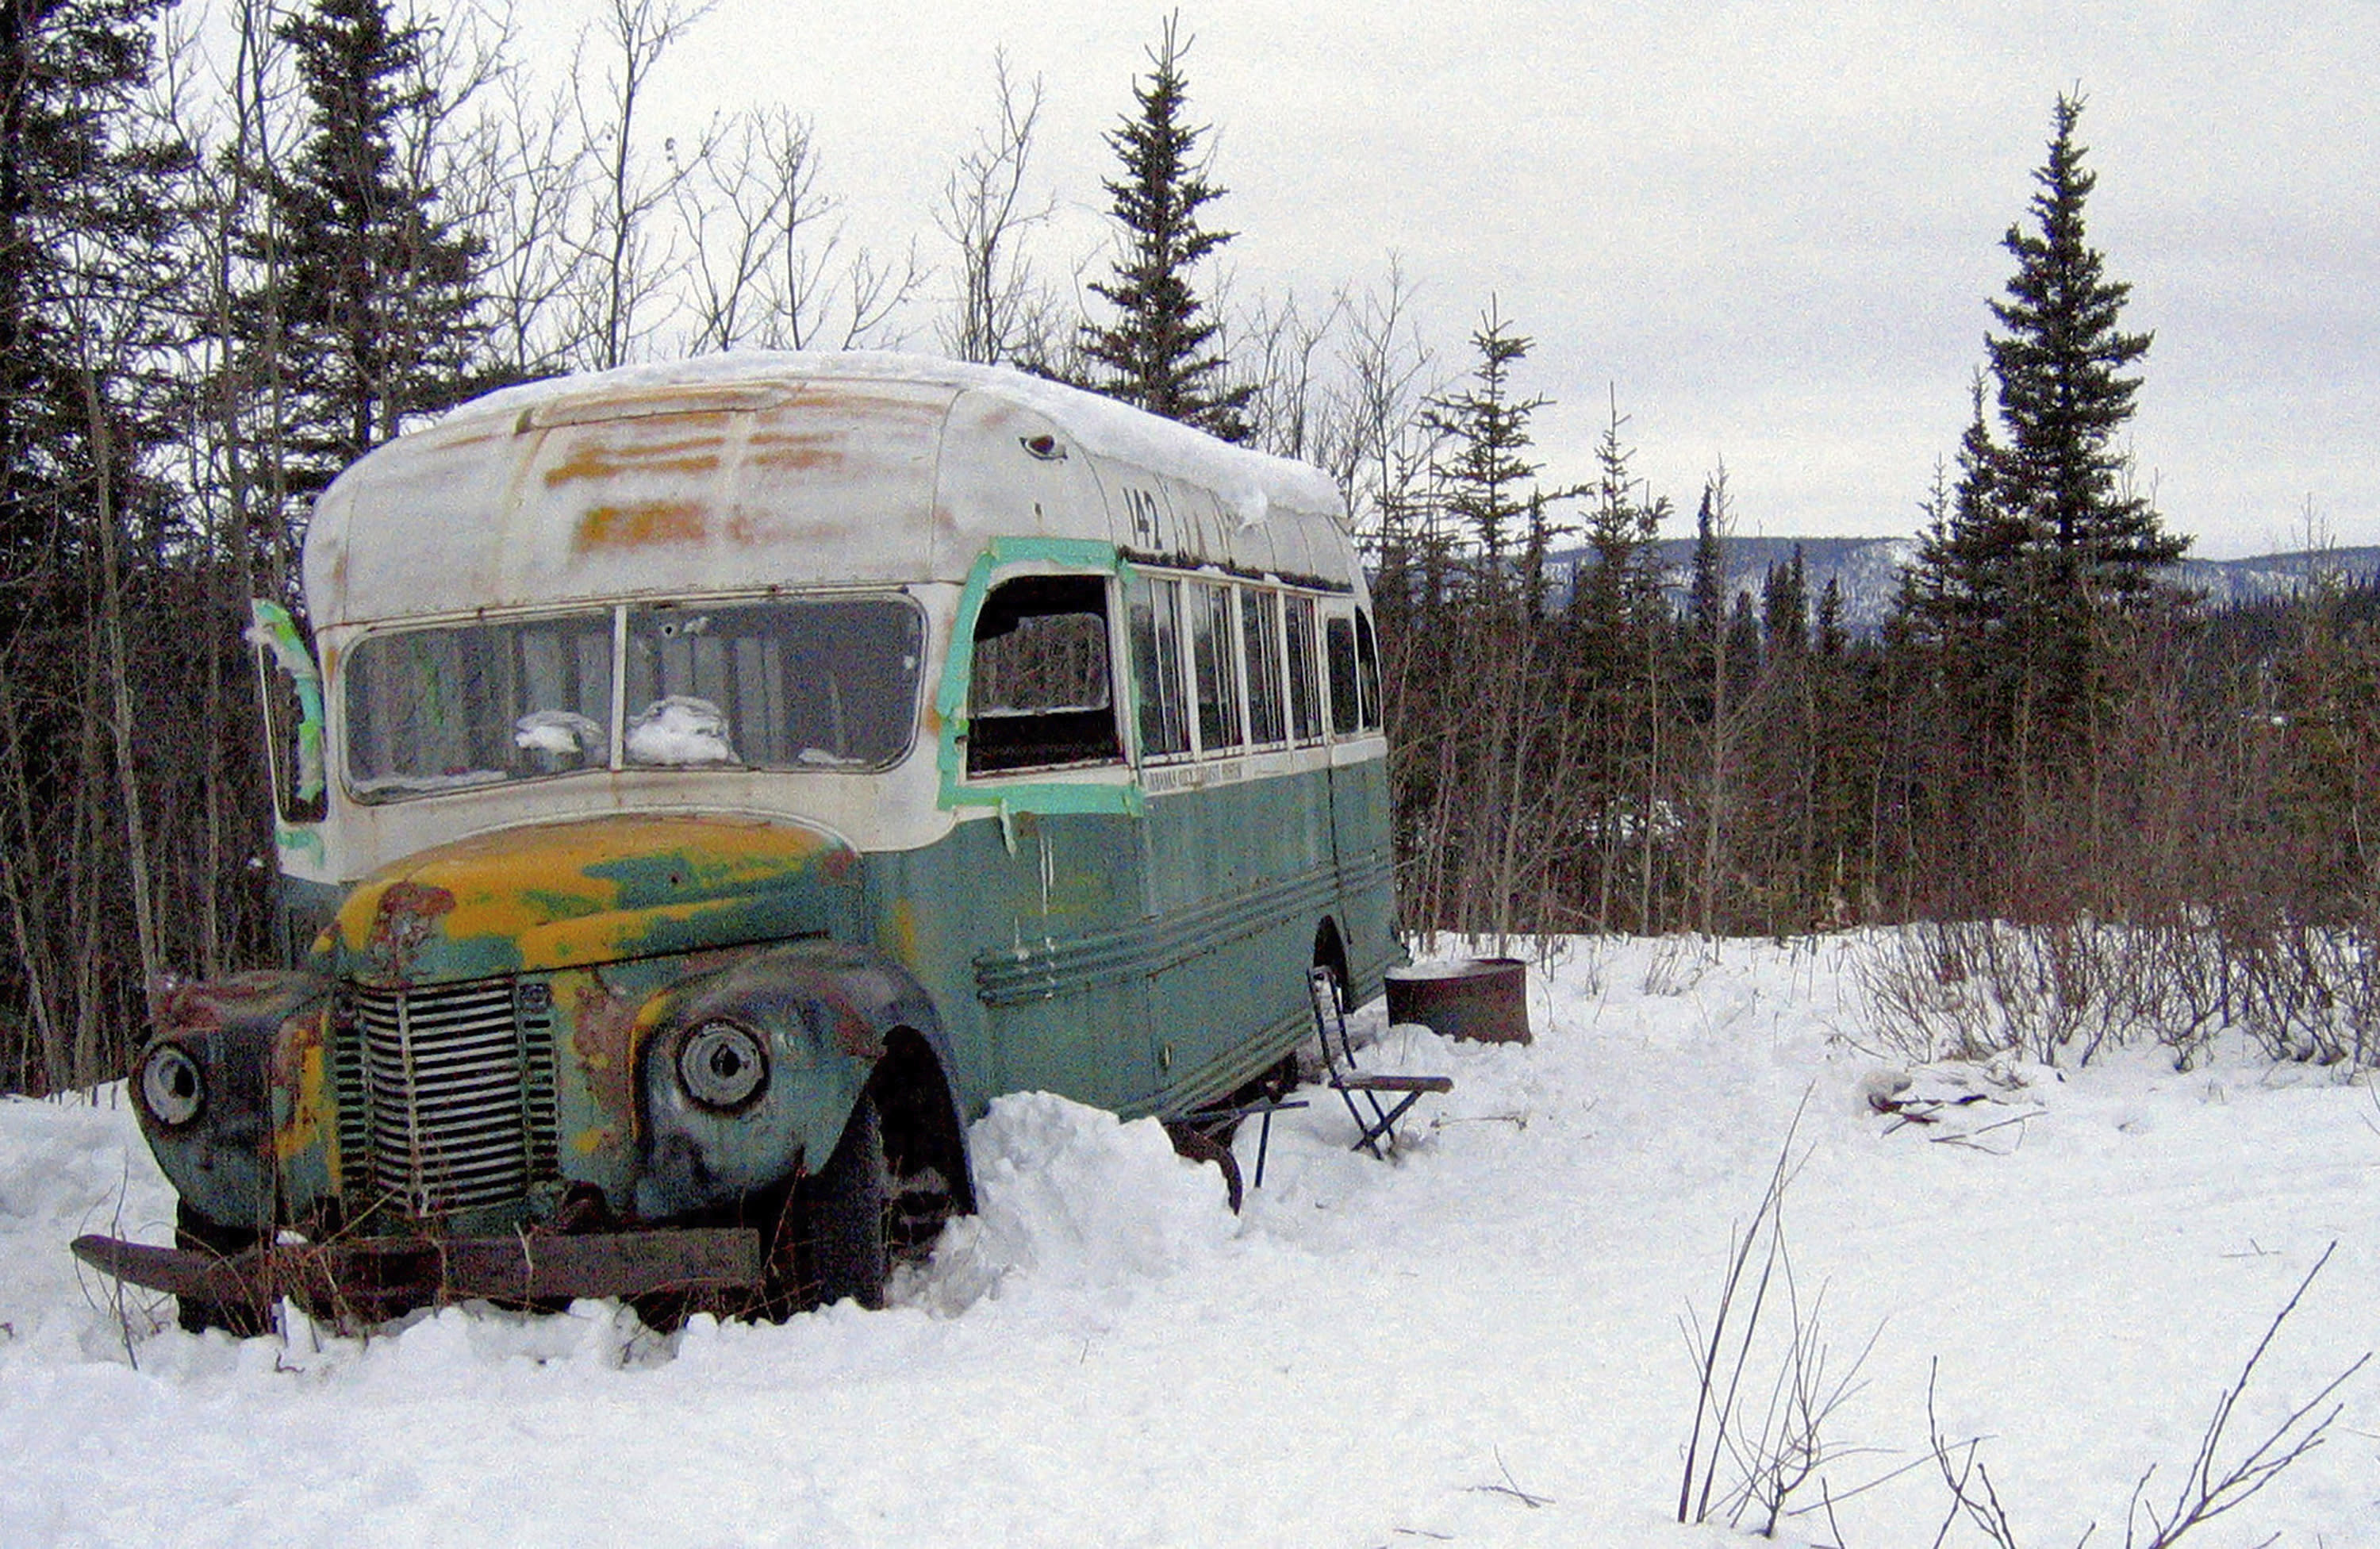 FILE - This March 21, 2006, file photo, shows the abandoned bus where Christopher McCandless starved to death in 1992 on Stampede Road near Healy, Alaska. They're tired of the deaths and multiple rescues linked to the decrepit old bus whose legendary status continues to lure adventurers to one of Alaska's most unforgiving hinterlands, and now officials in the nearest town want it removed, something the state has no intention of doing. (AP Photo/Jillian Rogers, File )